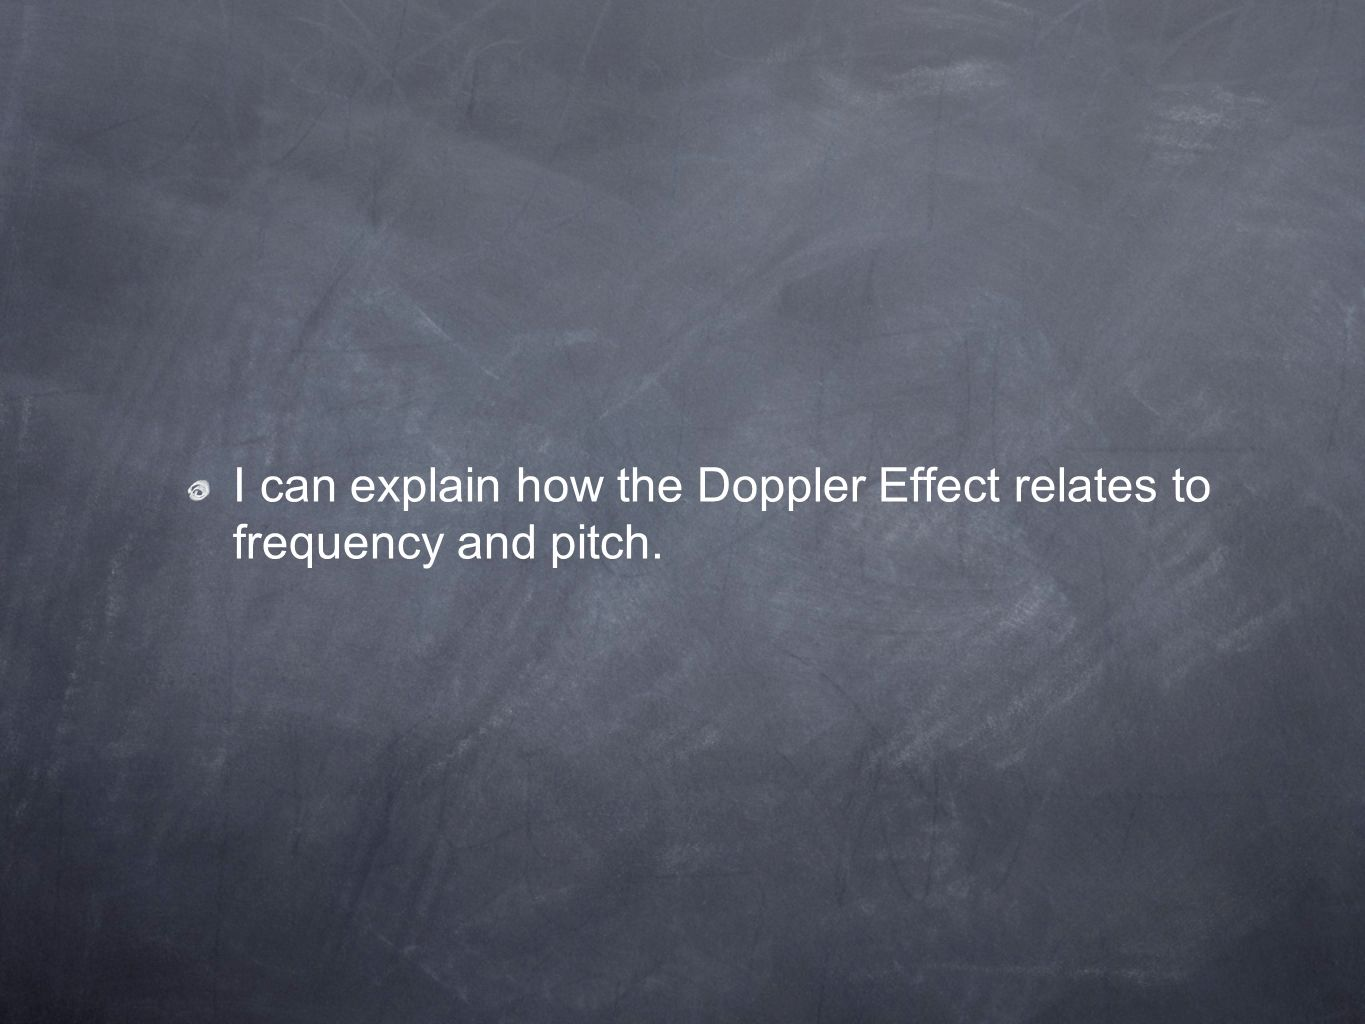 I can explain how the Doppler Effect relates to frequency and pitch.